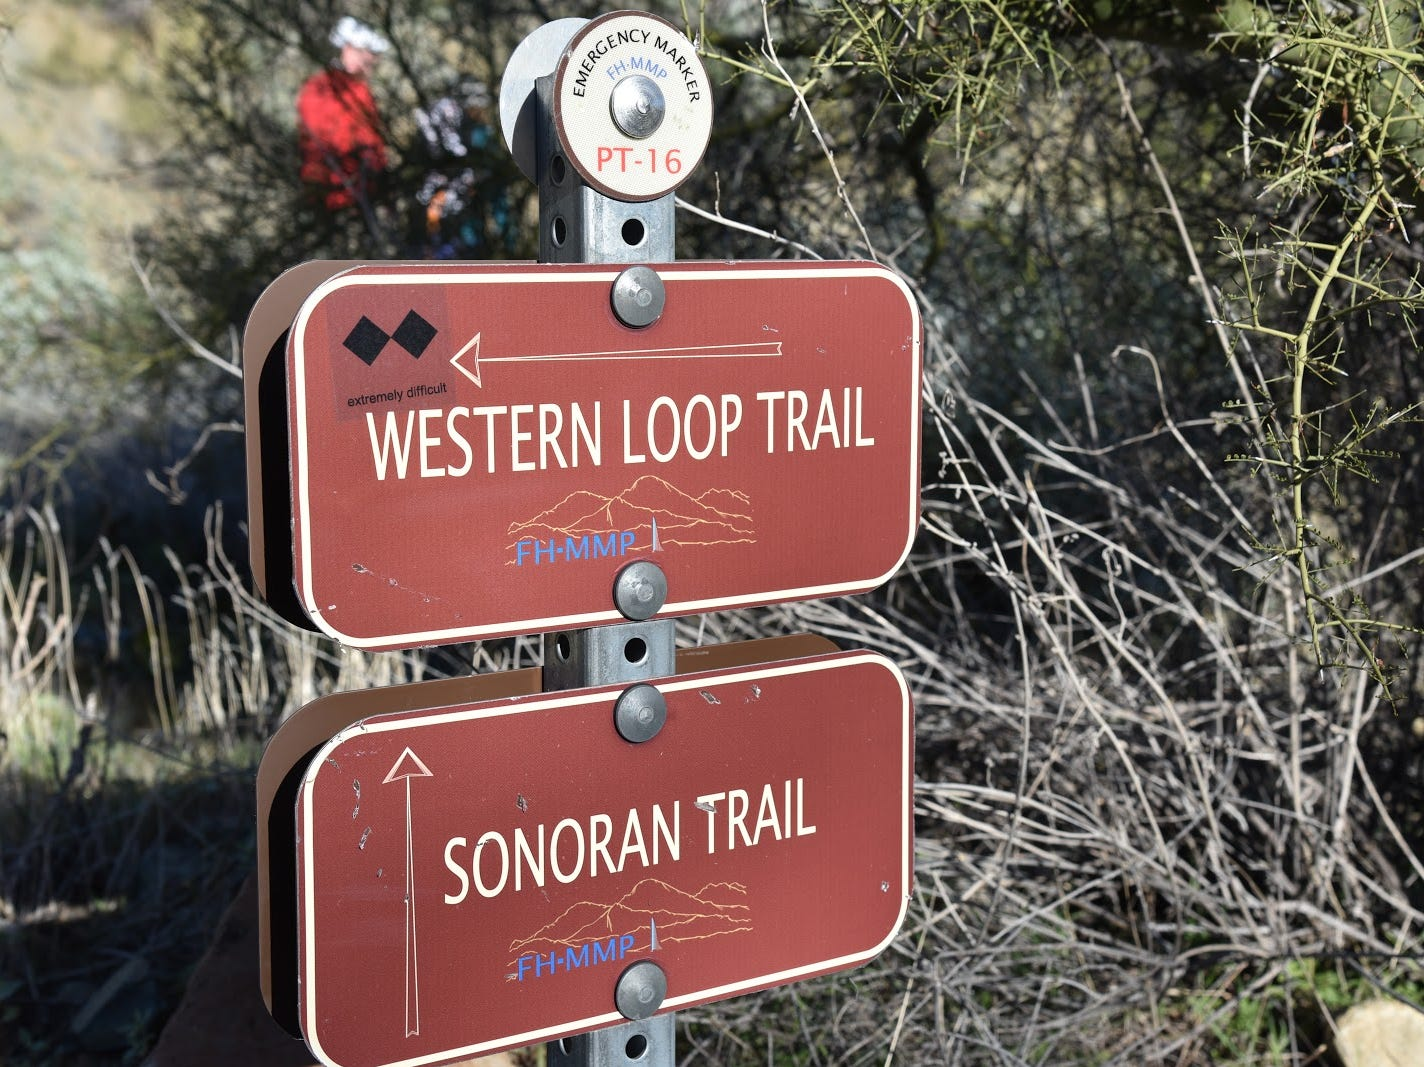 Excellent signage keeps hikers on track.